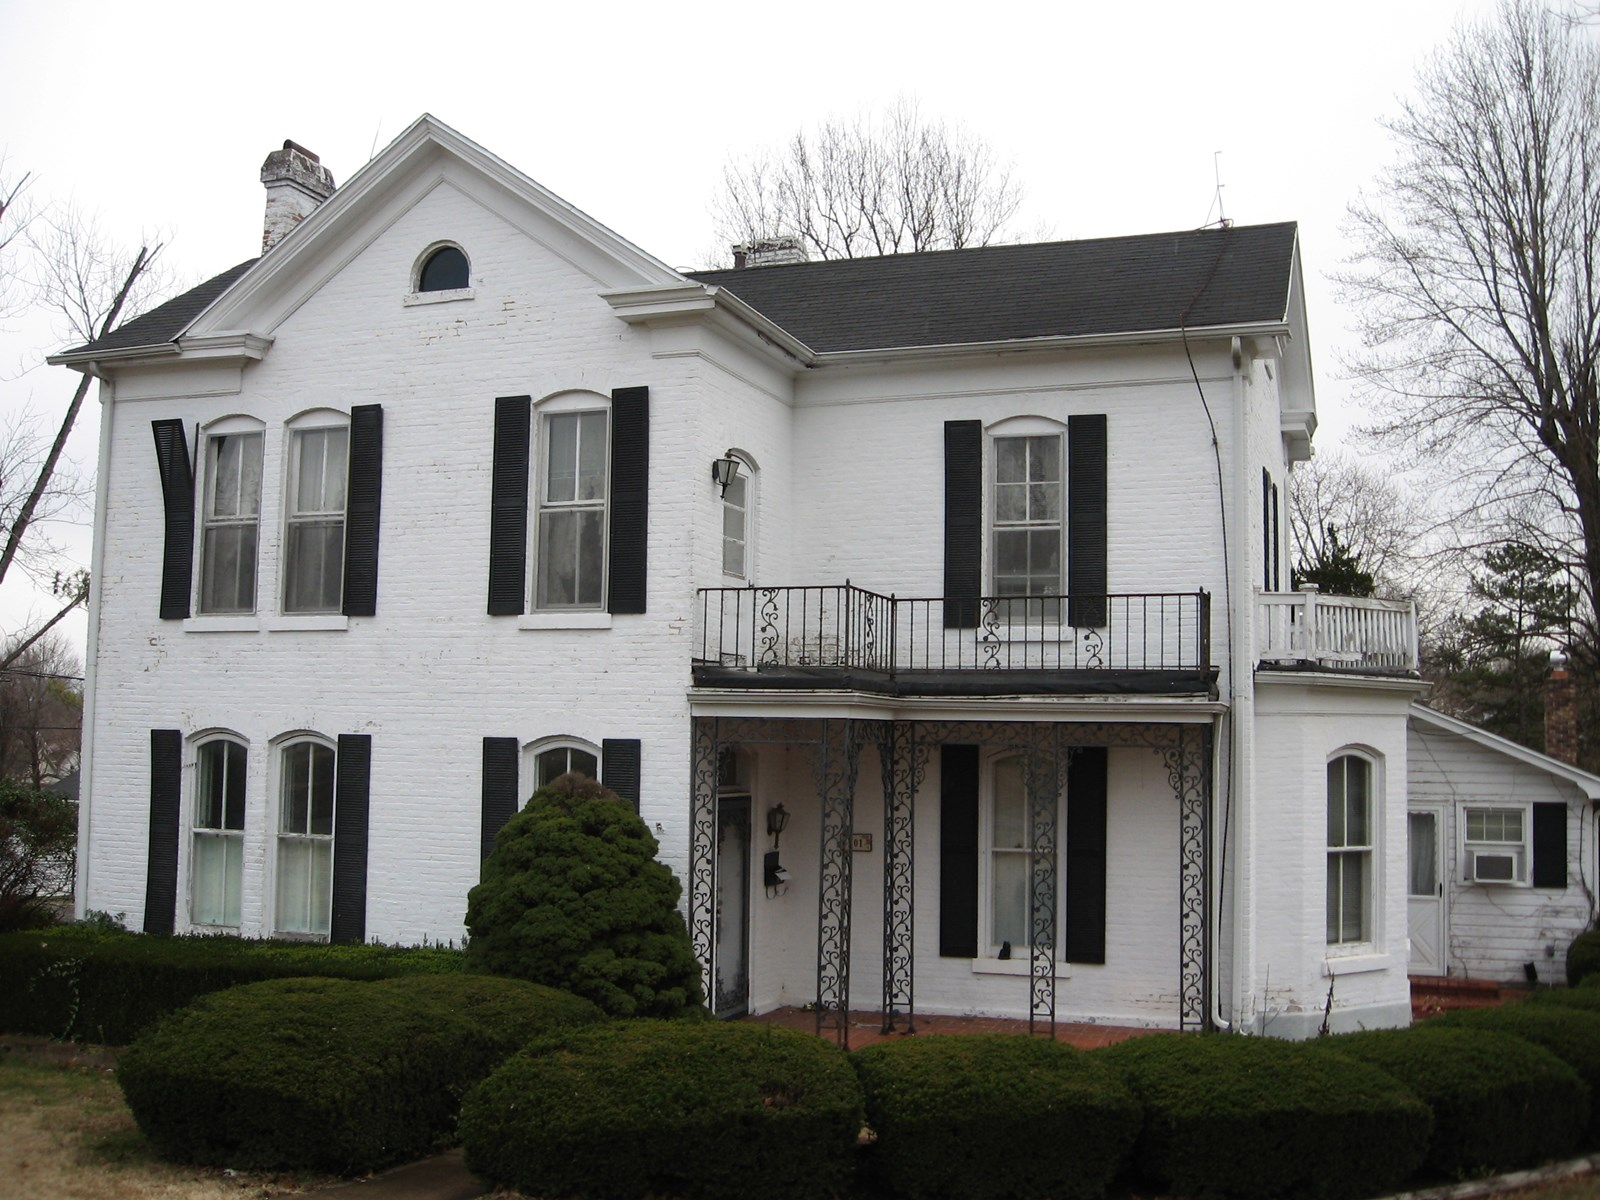 2 STORY BRICK HOME BUILT IN 1850: